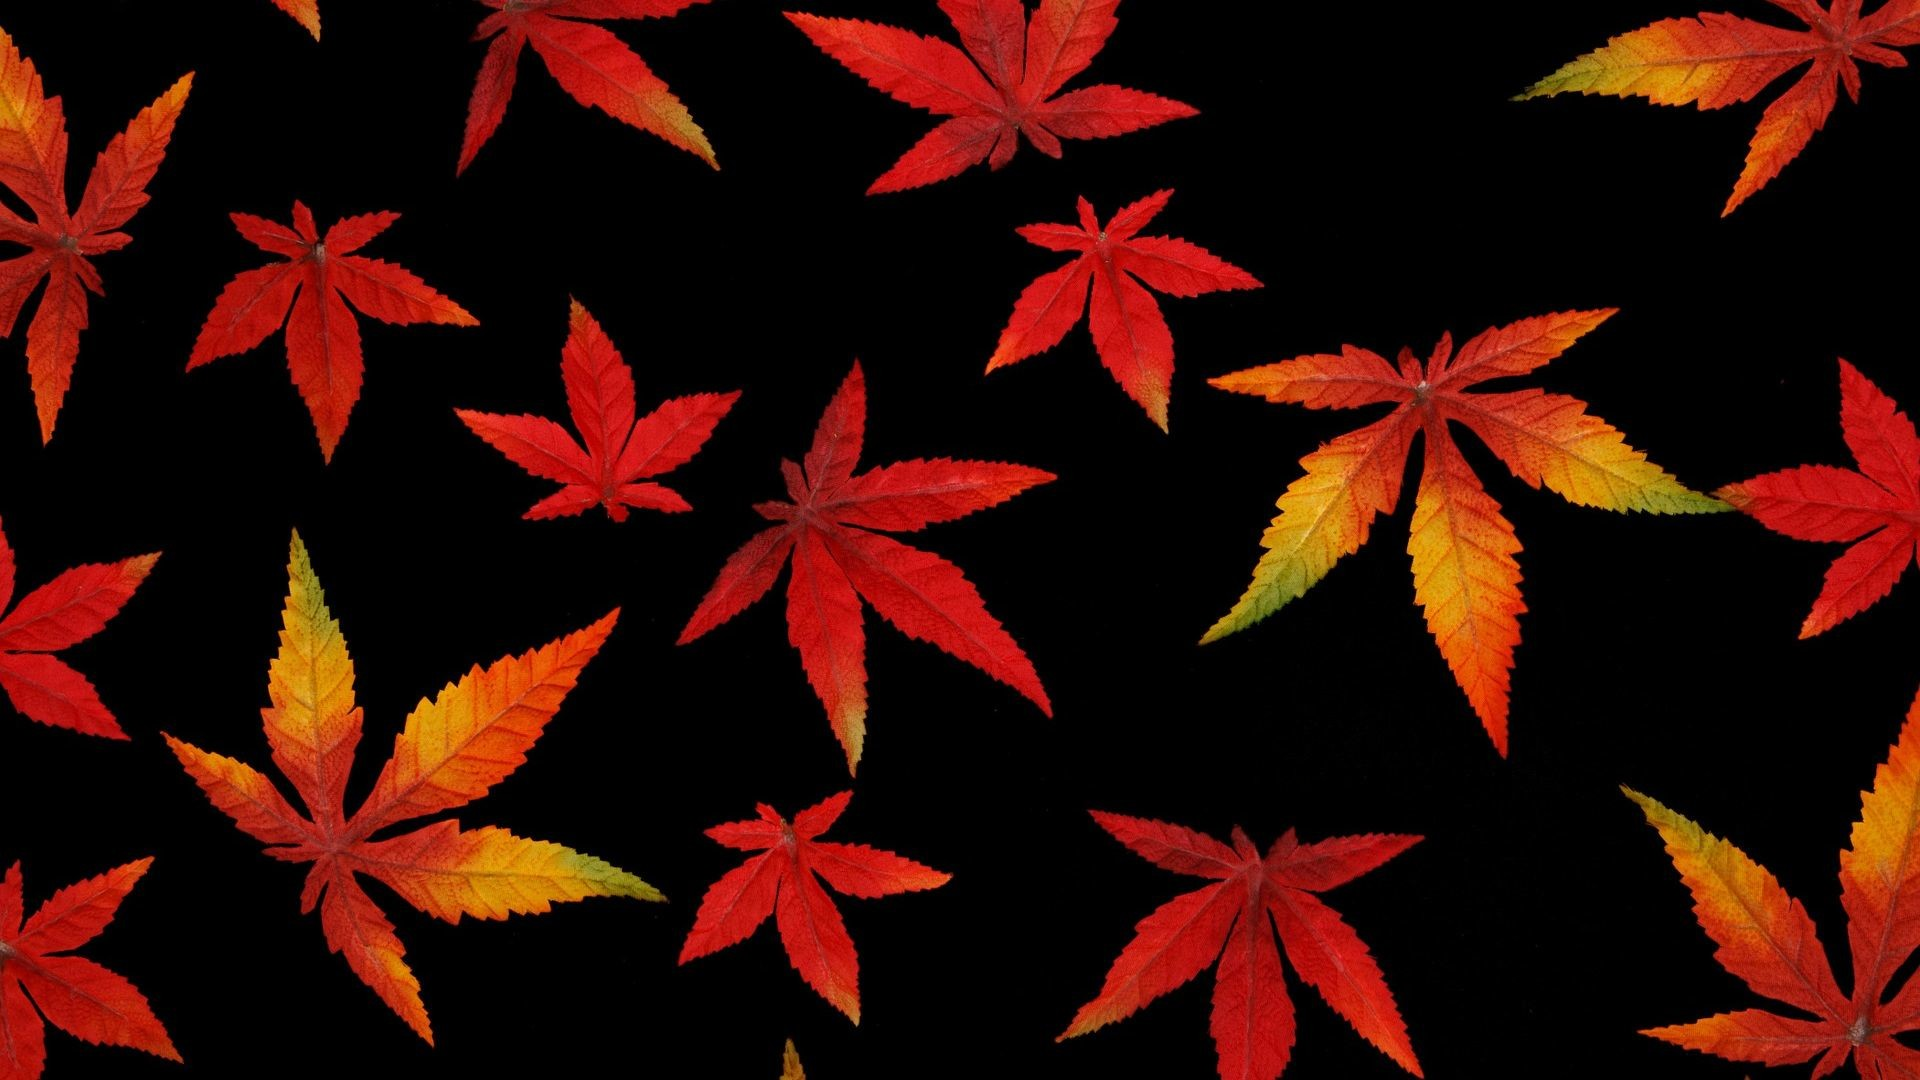 1920x1080 Abstract Autumn Leaf with Black Background Wallpaper